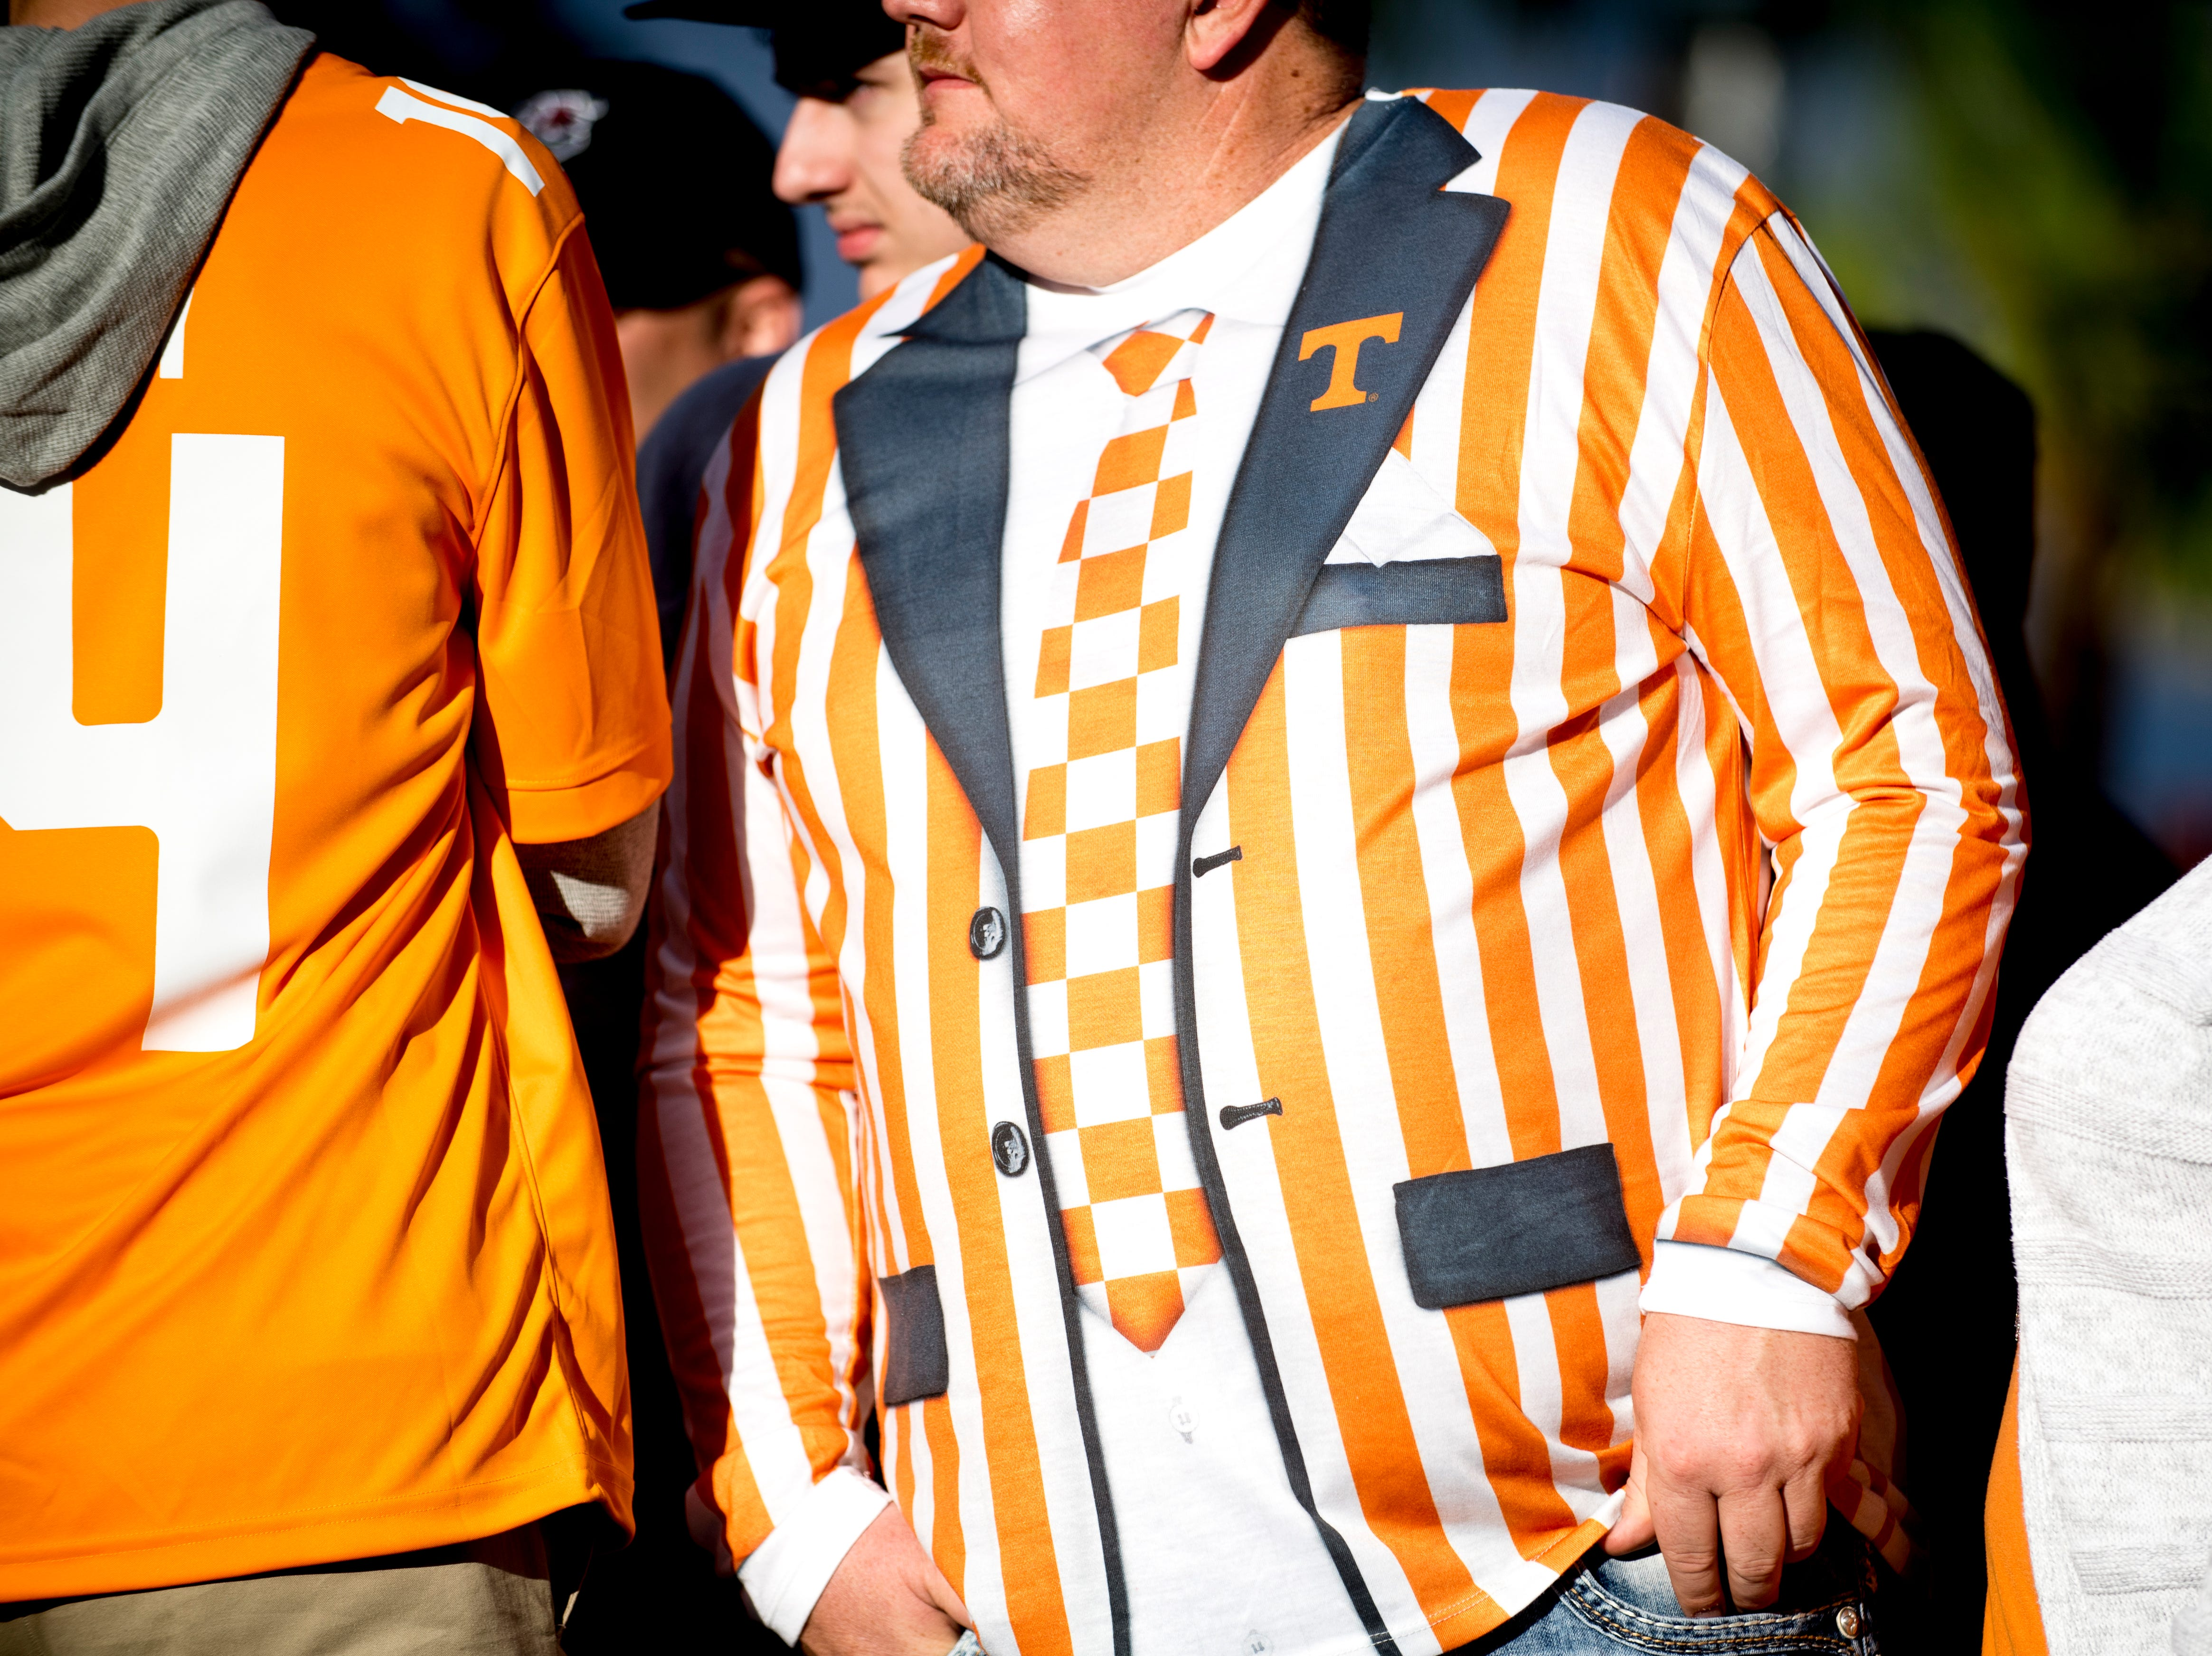 A Vol fans sports a tuxedo short before a game between Tennessee and South Carolina at Williams-Brice Stadium in Columbia, South Carolina on Saturday, October 27, 2018.